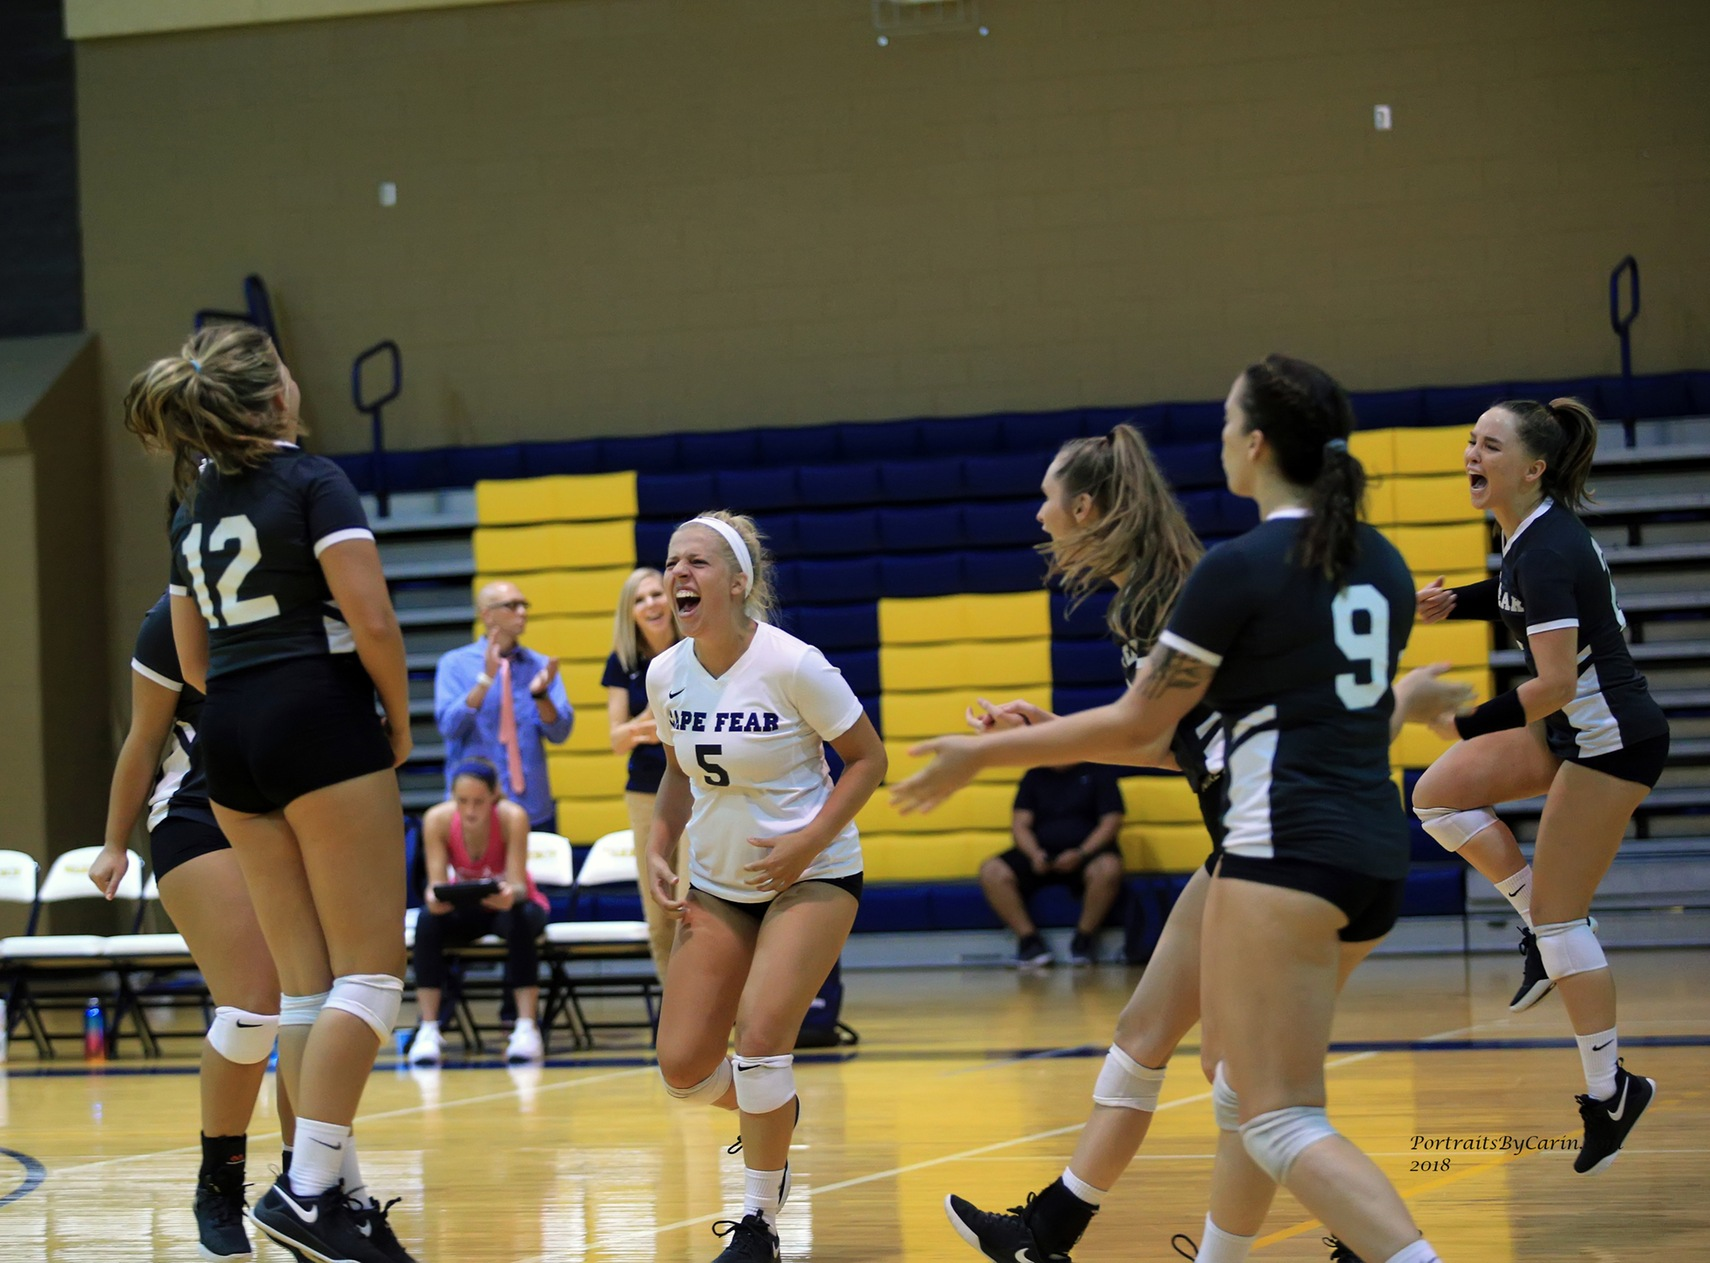 Cape Fear Concludes Catawba Valley Tournament